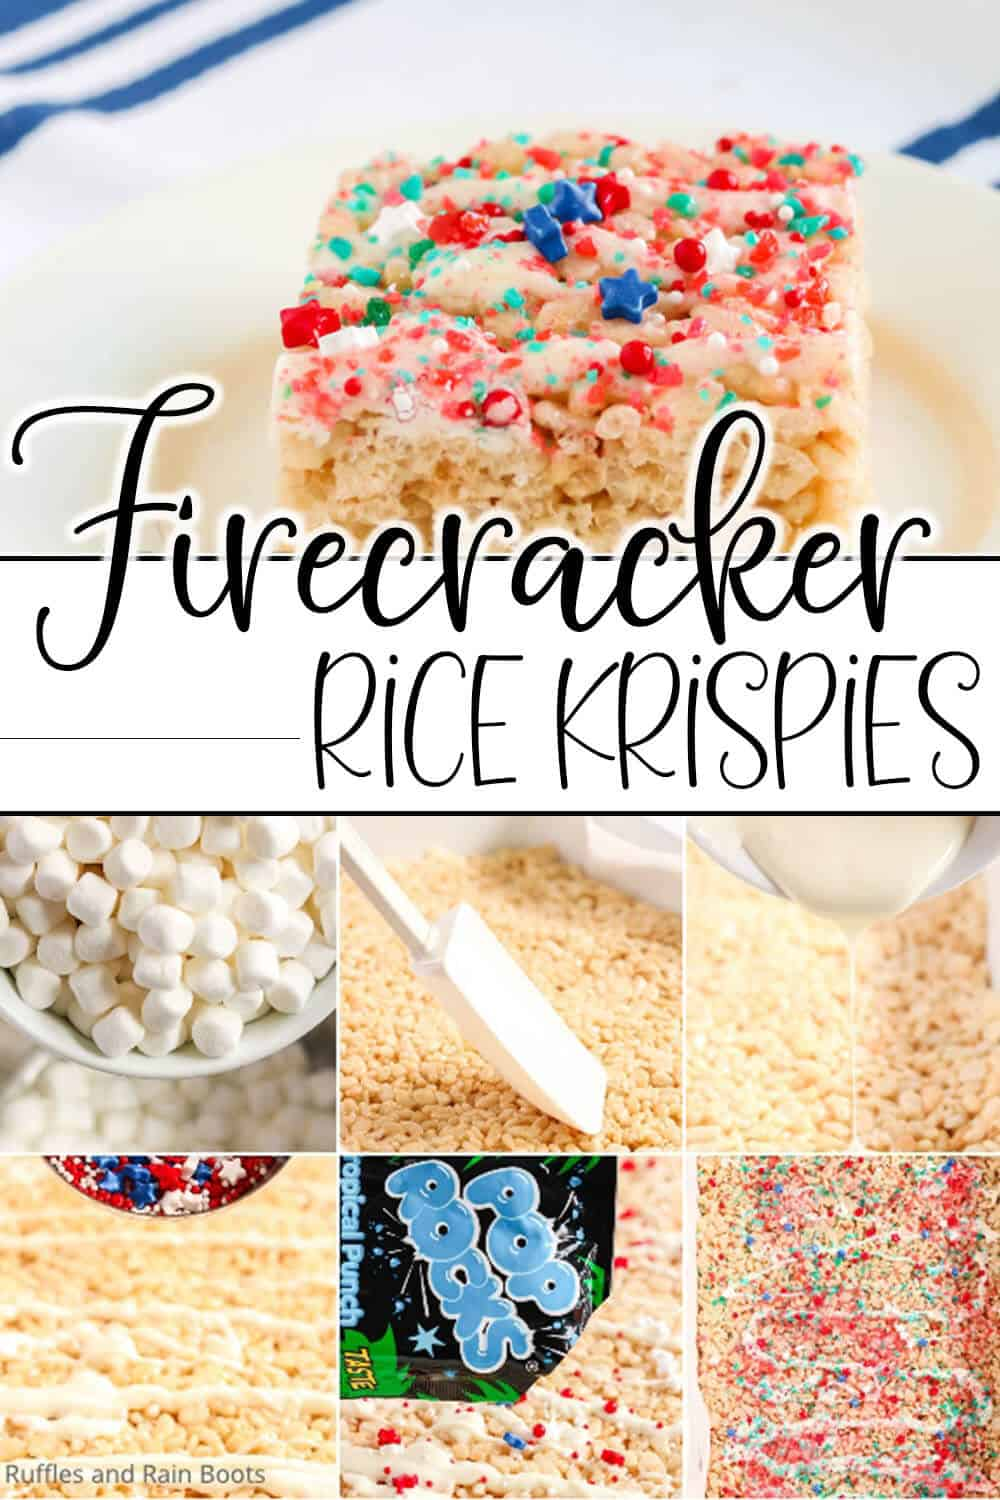 photo collage of independence day rice kirpsies treats with text which reads firecracker rice krispies